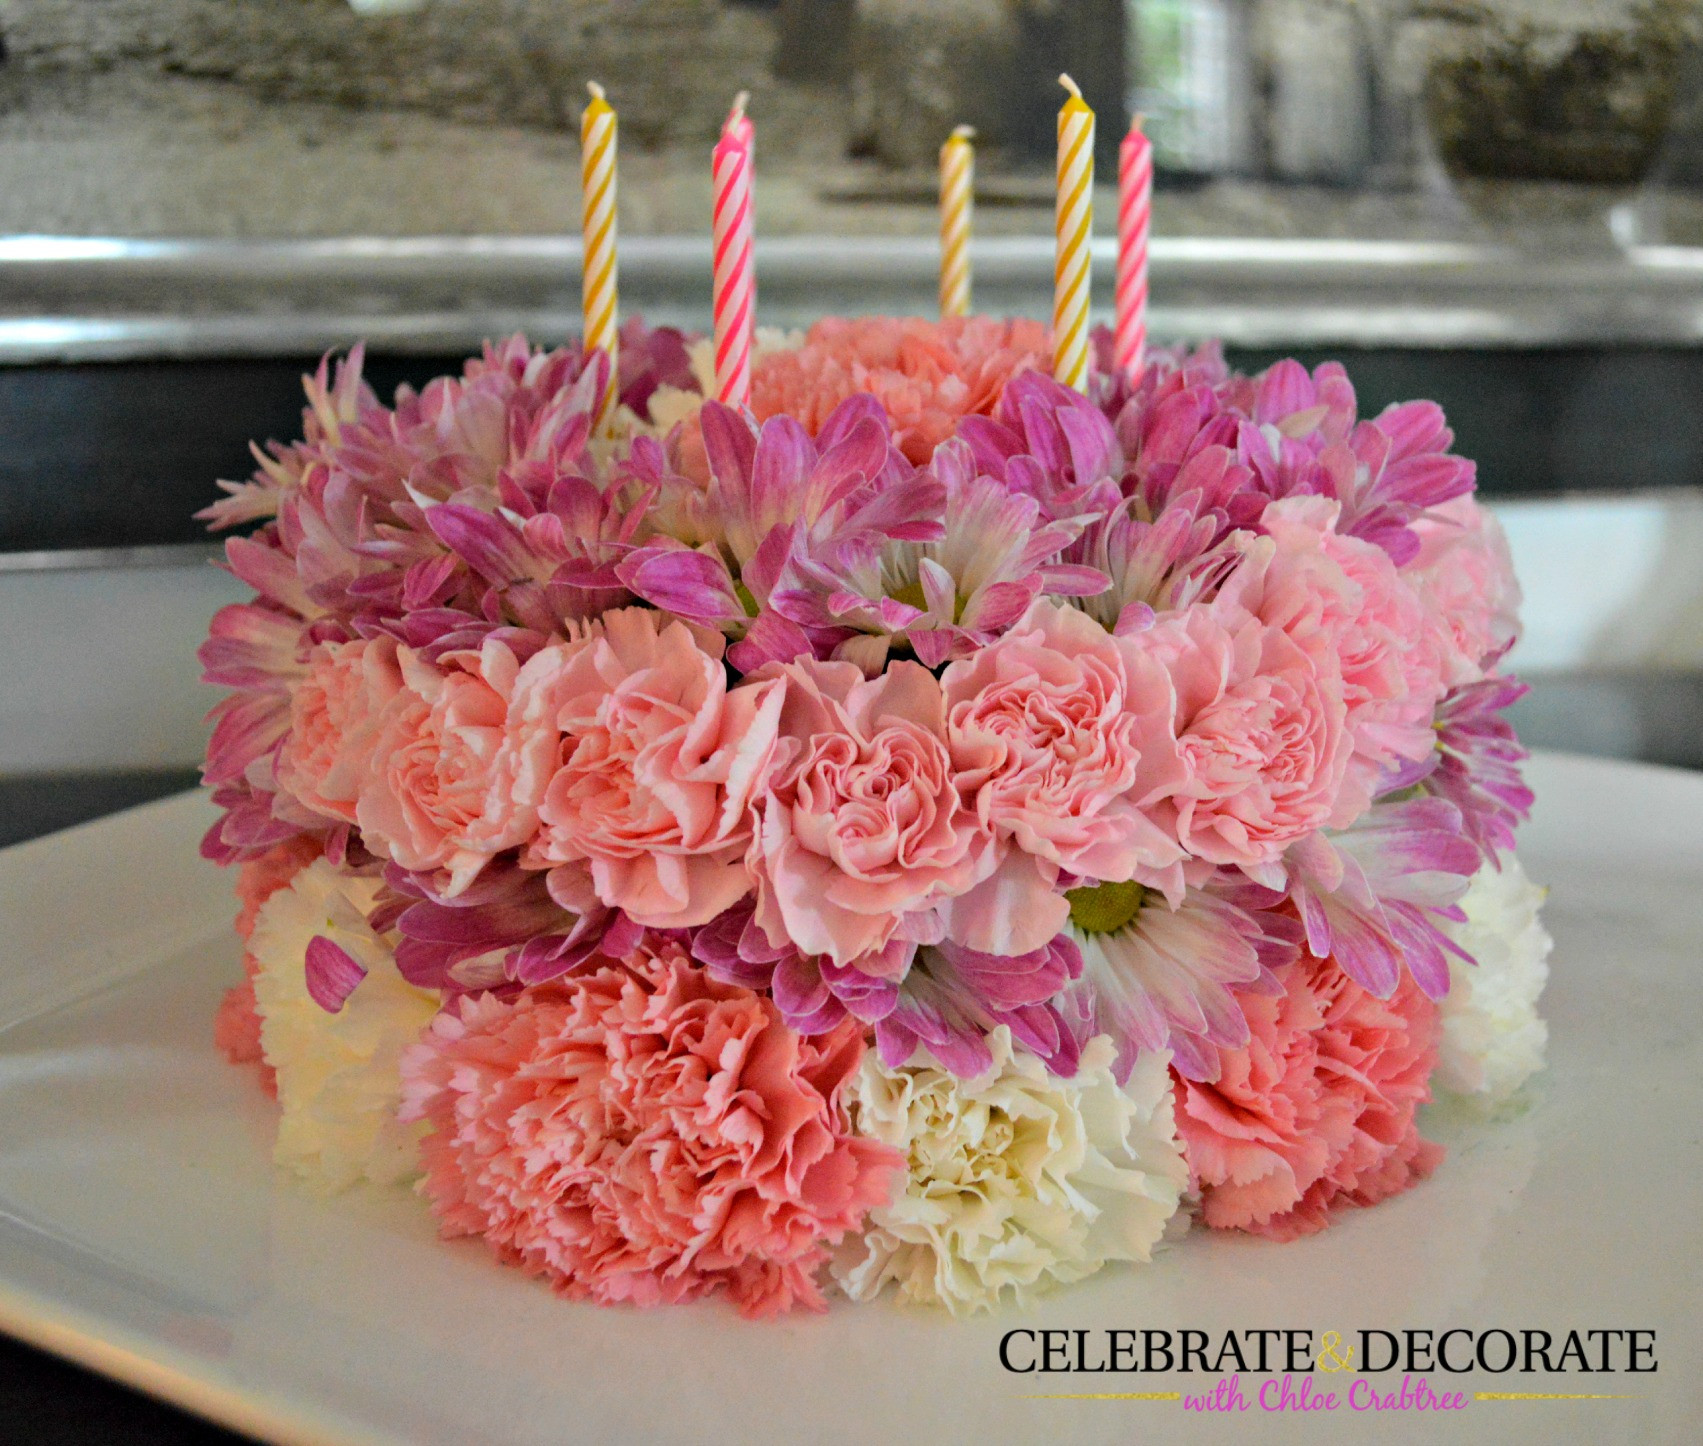 Best ideas about Birthday Cake Flowers . Save or Pin How to Make a Floral Birthday Cake Celebrate & Decorate Now.